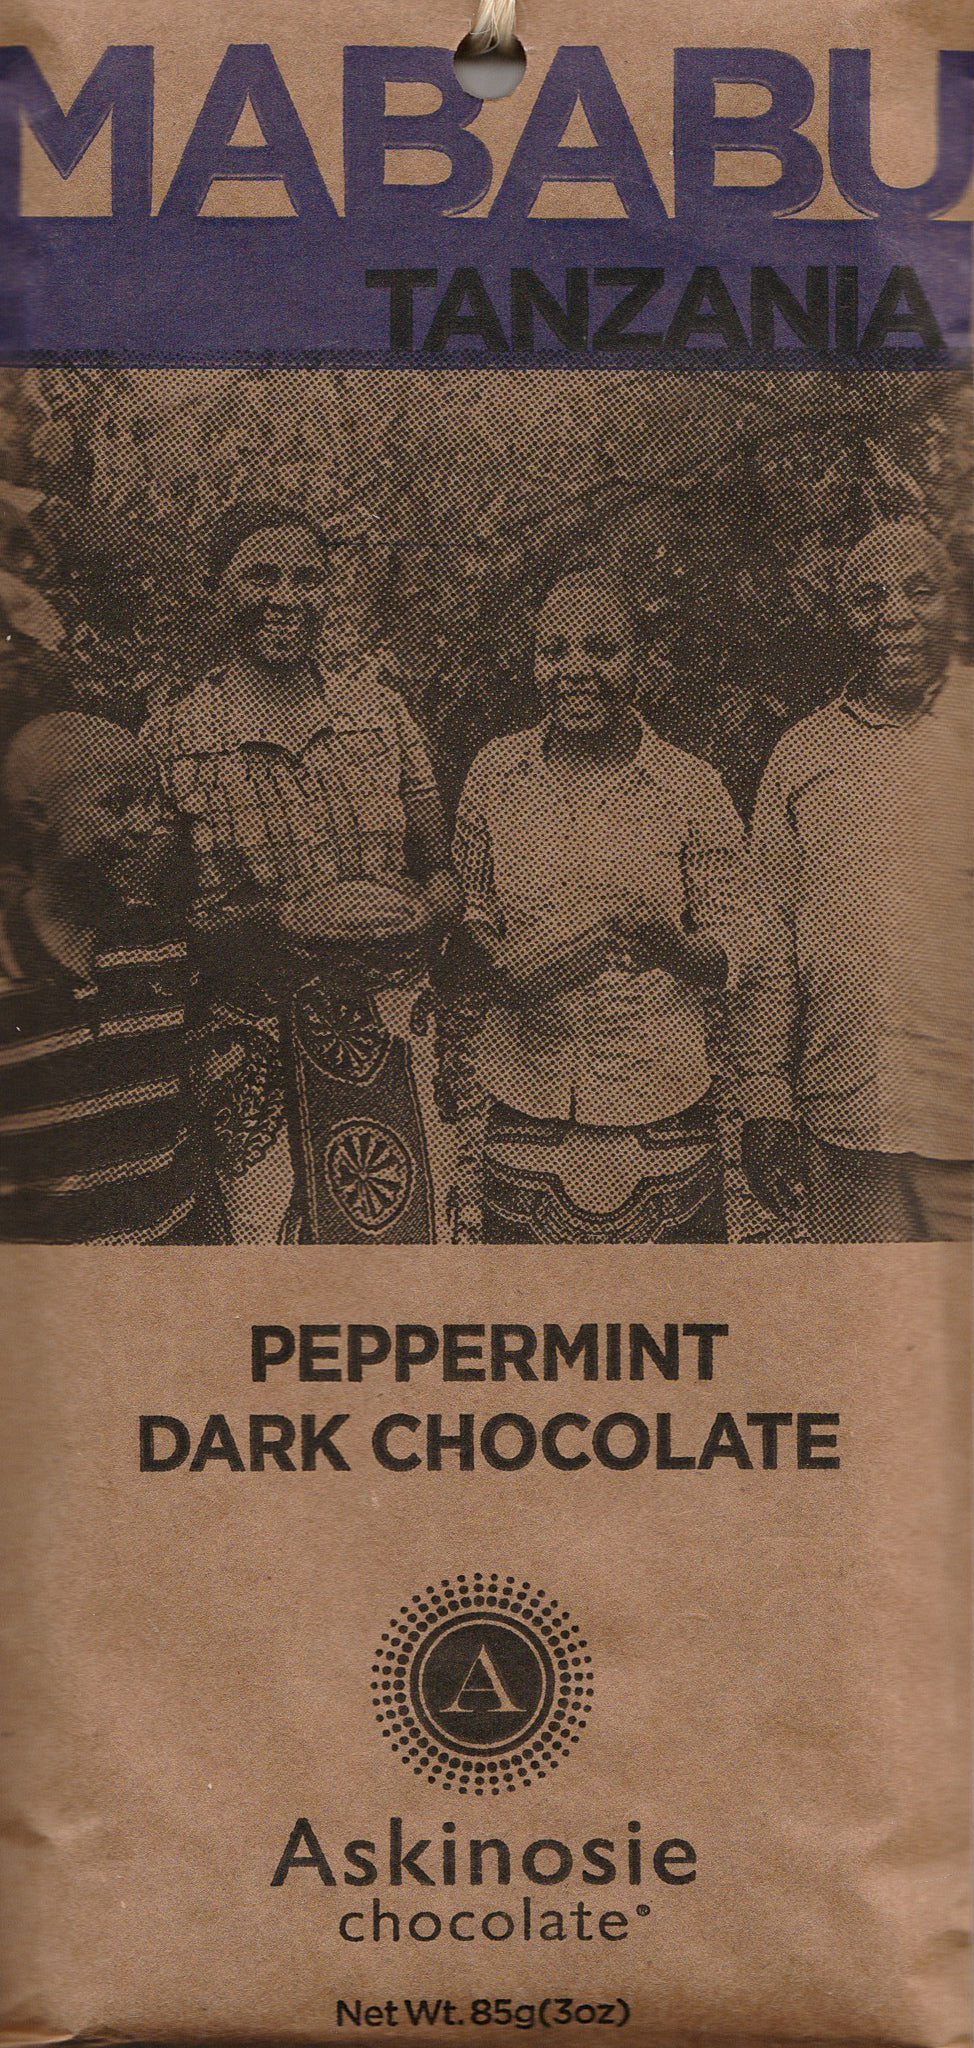 Askinosie Mababu Tanzania 58% Peppermint Dark Chocolate